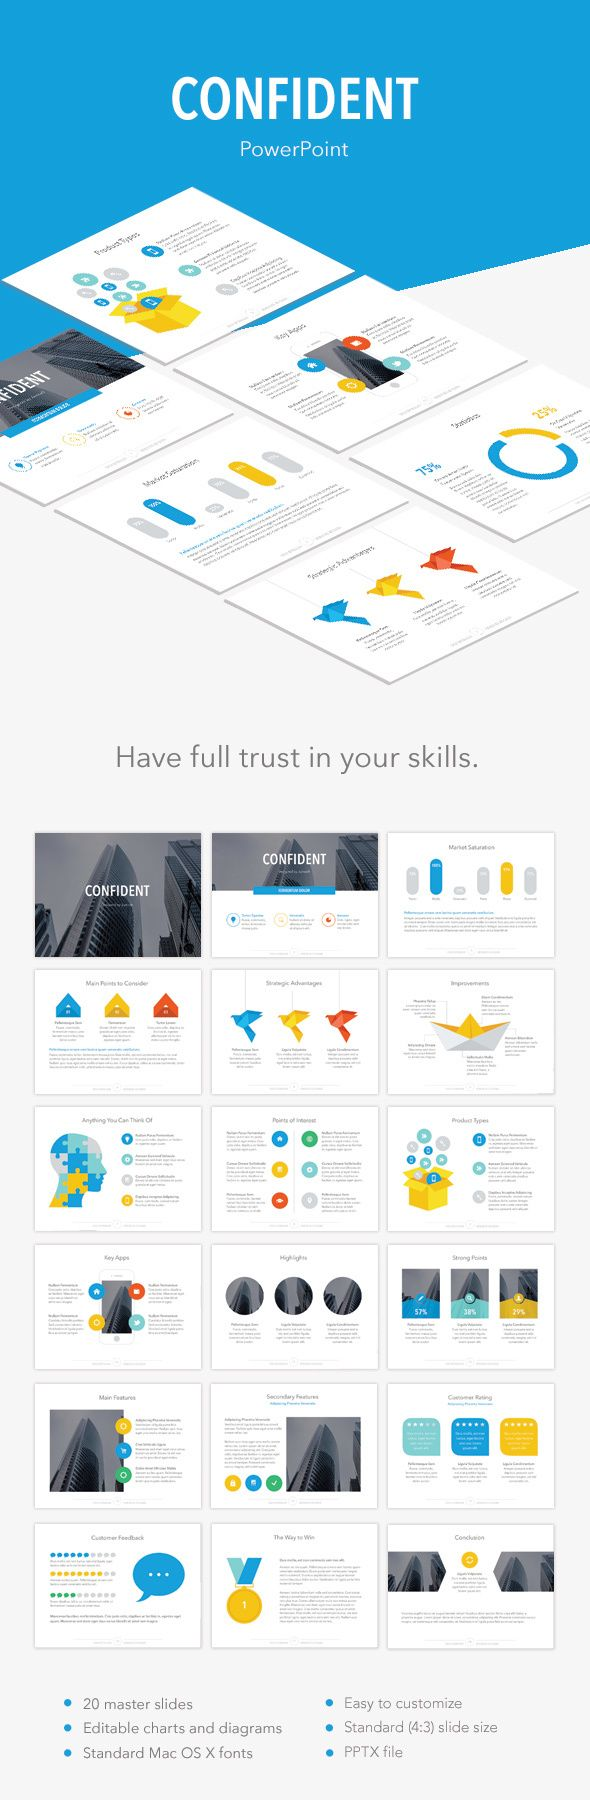 39 best powerpoint images on pinterest computers learning and confident powerpoint template powerpoint templates toneelgroepblik Gallery